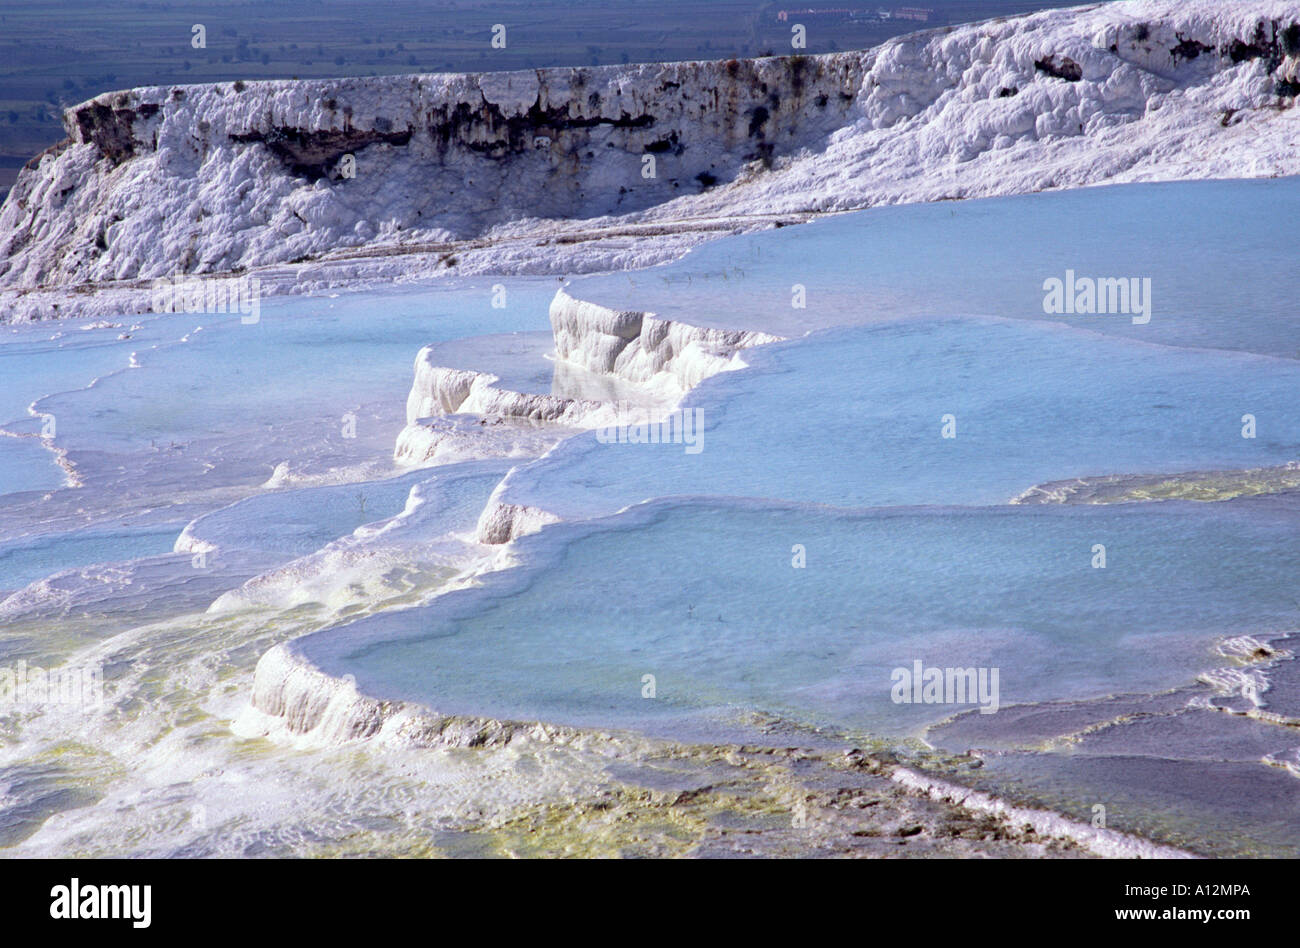 The calcified water at Pamukkale, Turkey Stock Photo: 5784937 - Alamy